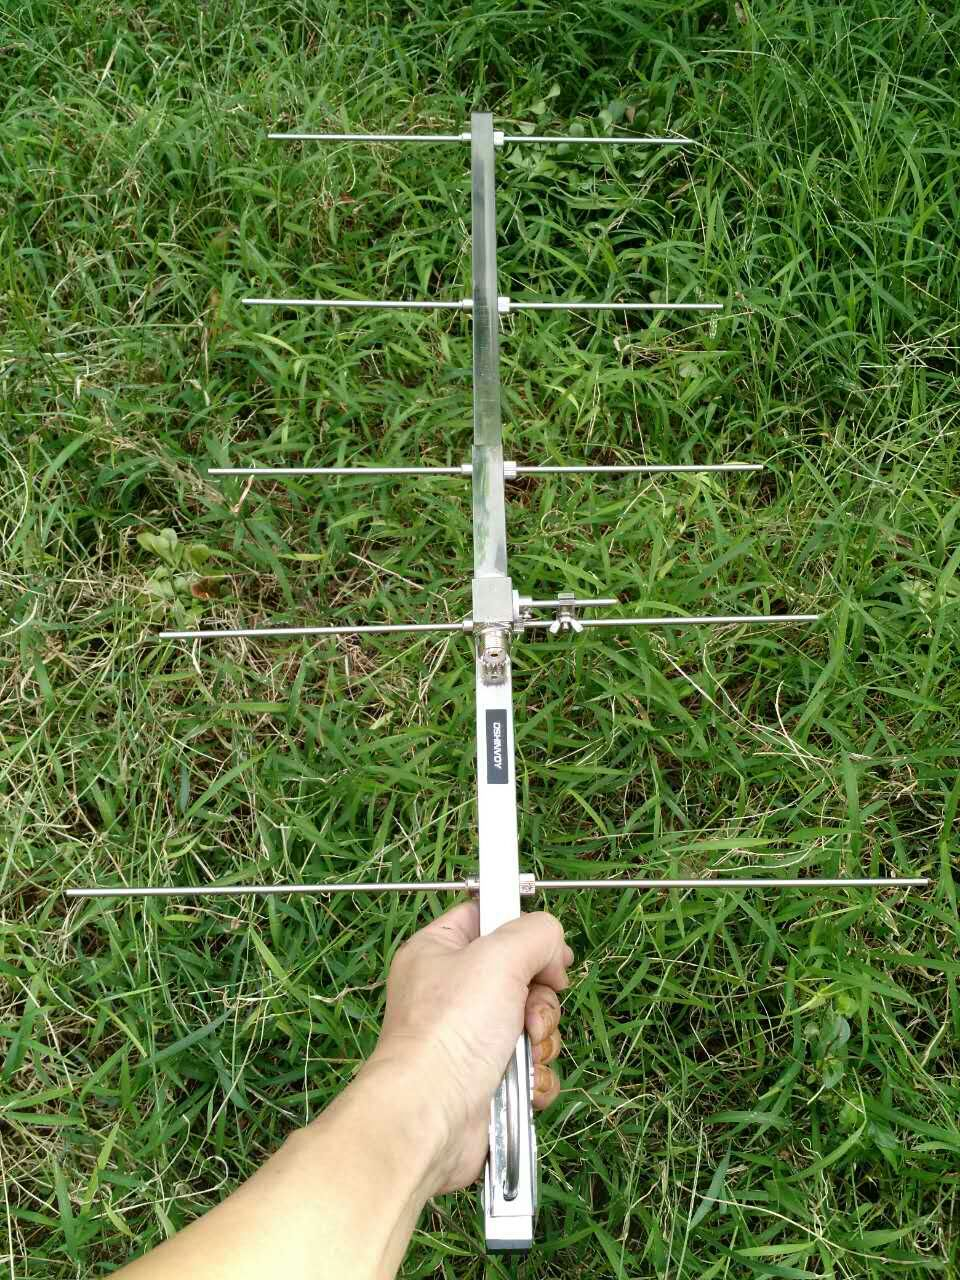 HAM 435M Yagi Antenna 5elements Yagi Of 433MHz 440mhz Amateur UHF Repeater Base Station Yagi Antenna